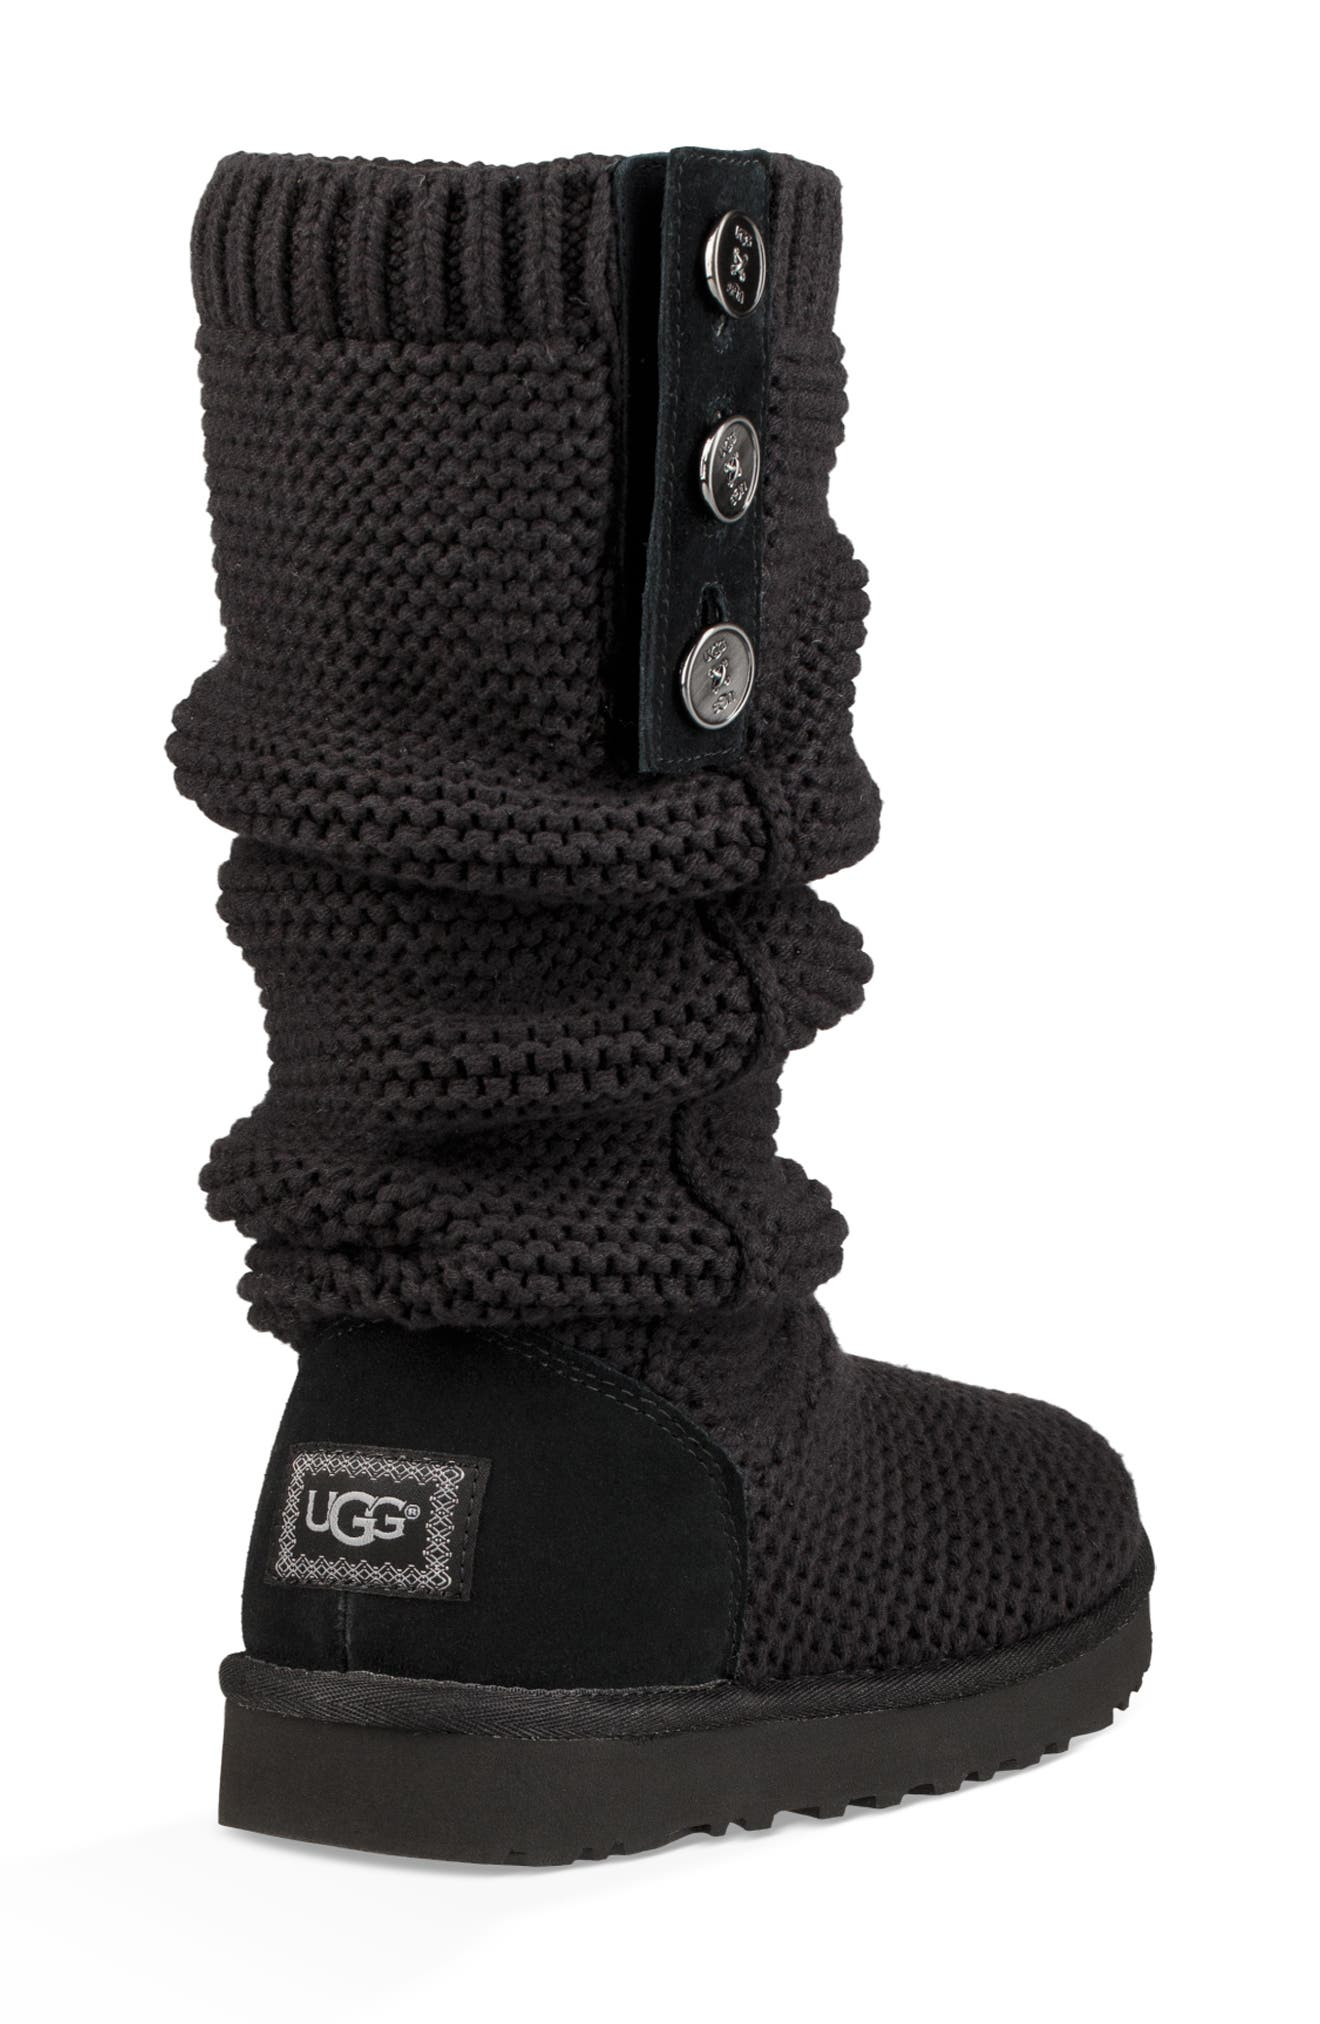 Ugg Purl Cardy Knit Boot Women Narrow Calf Nordstrom